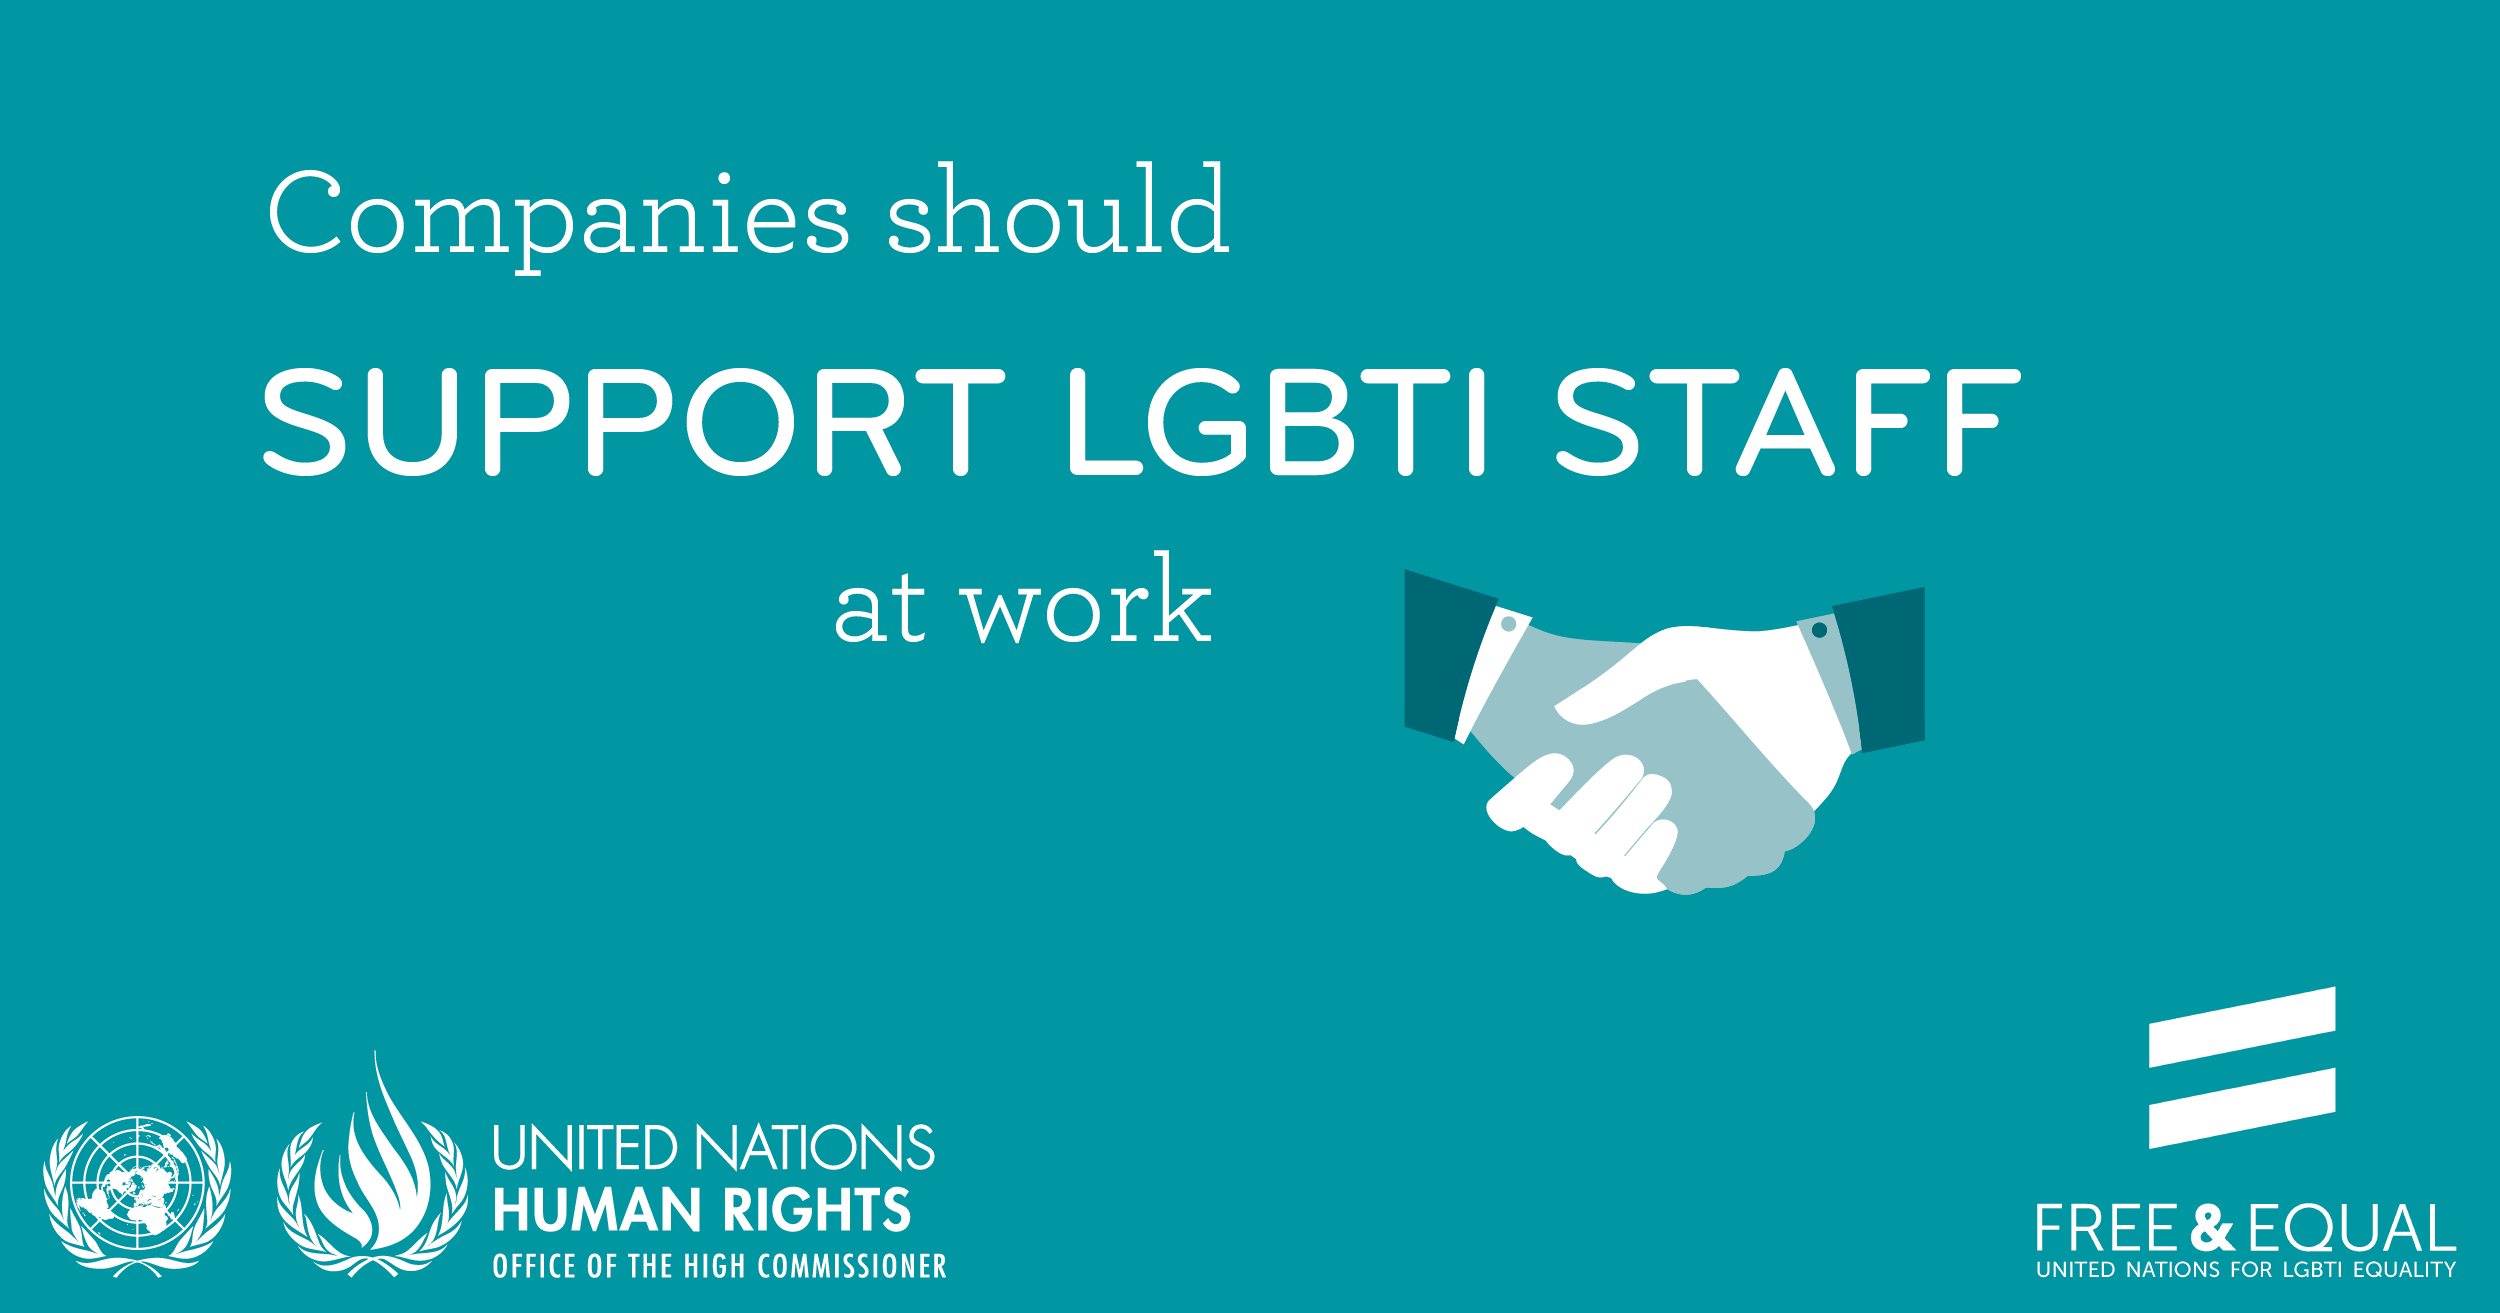 Companies should support LGBTI staff at work.